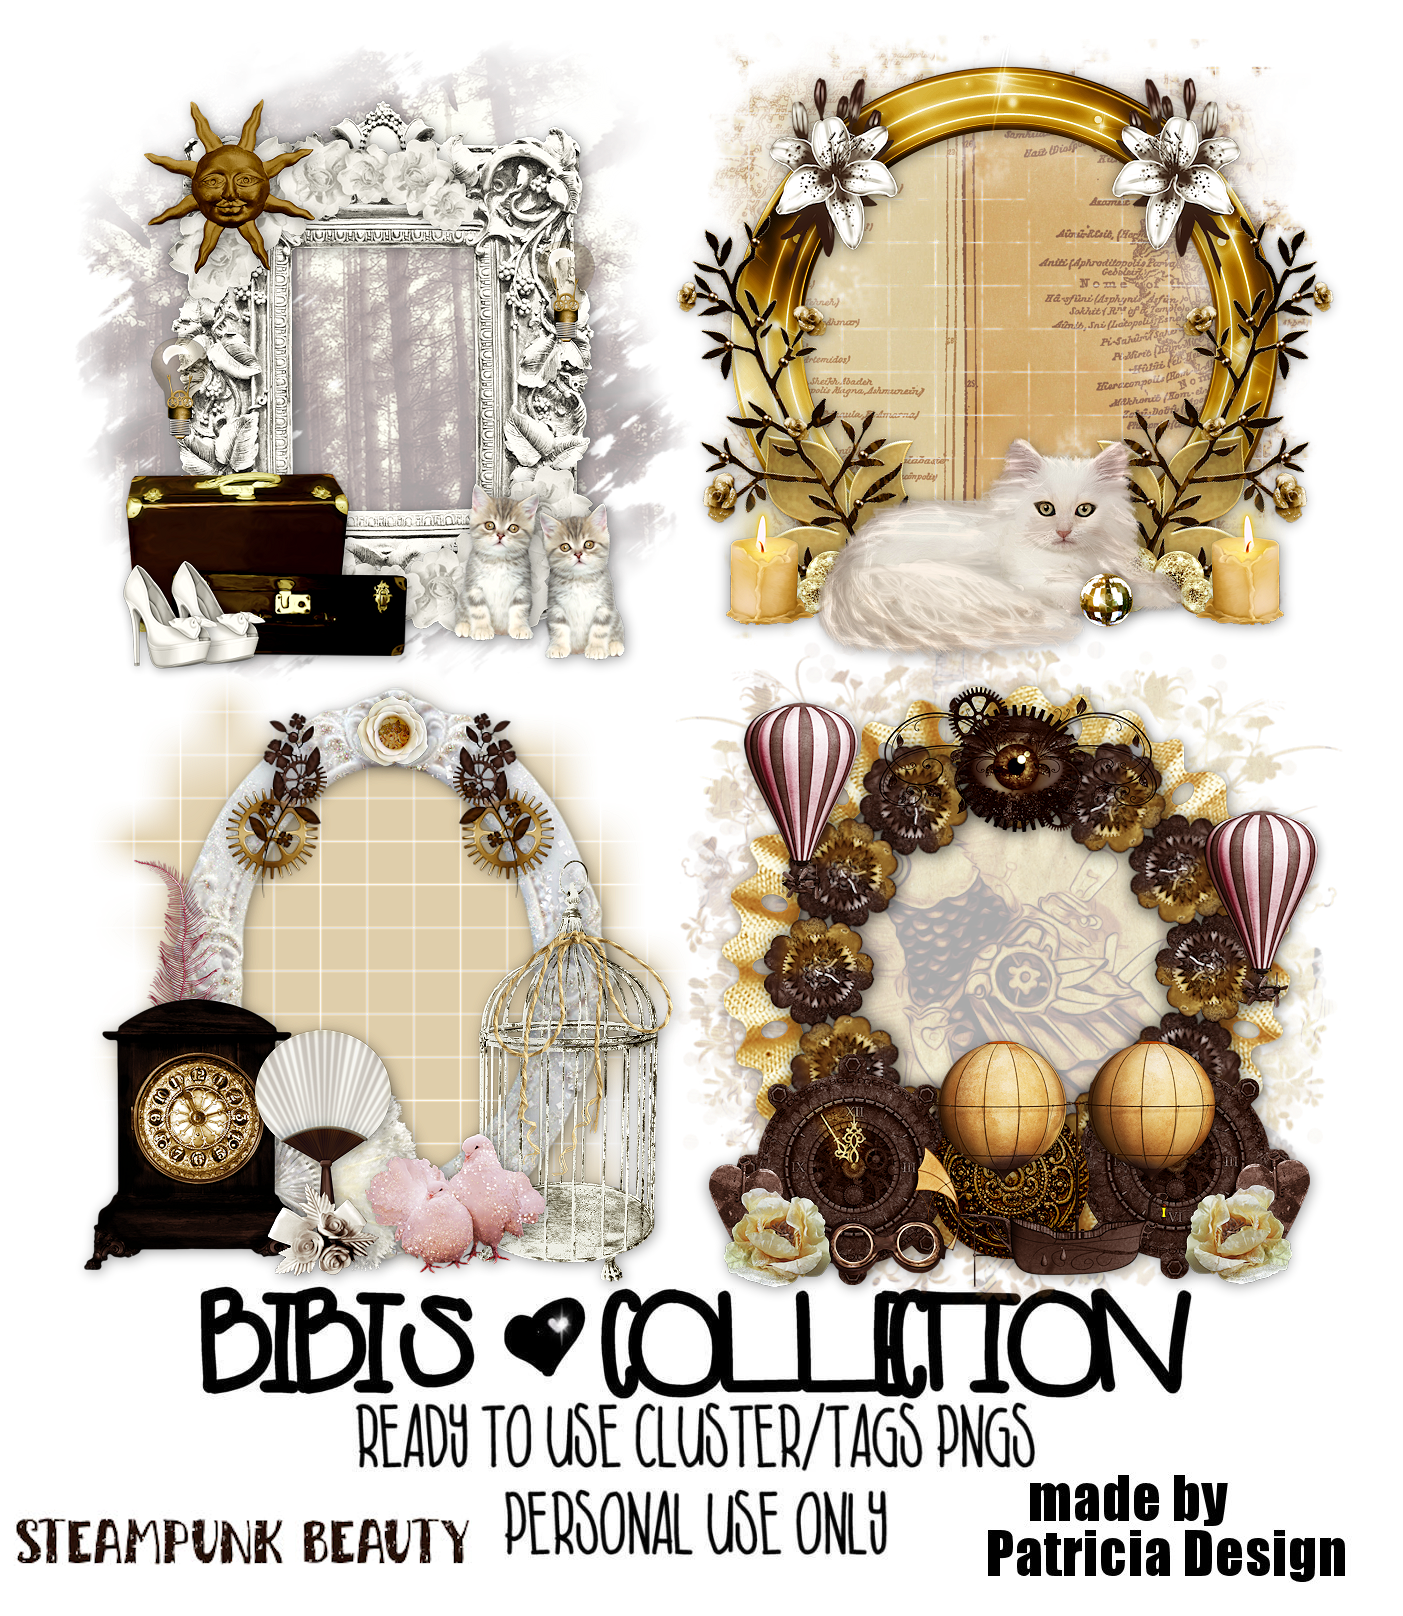 STEAMPUNK BEAUTY READY CLUSTER TAGS PNG BY PATRICIA